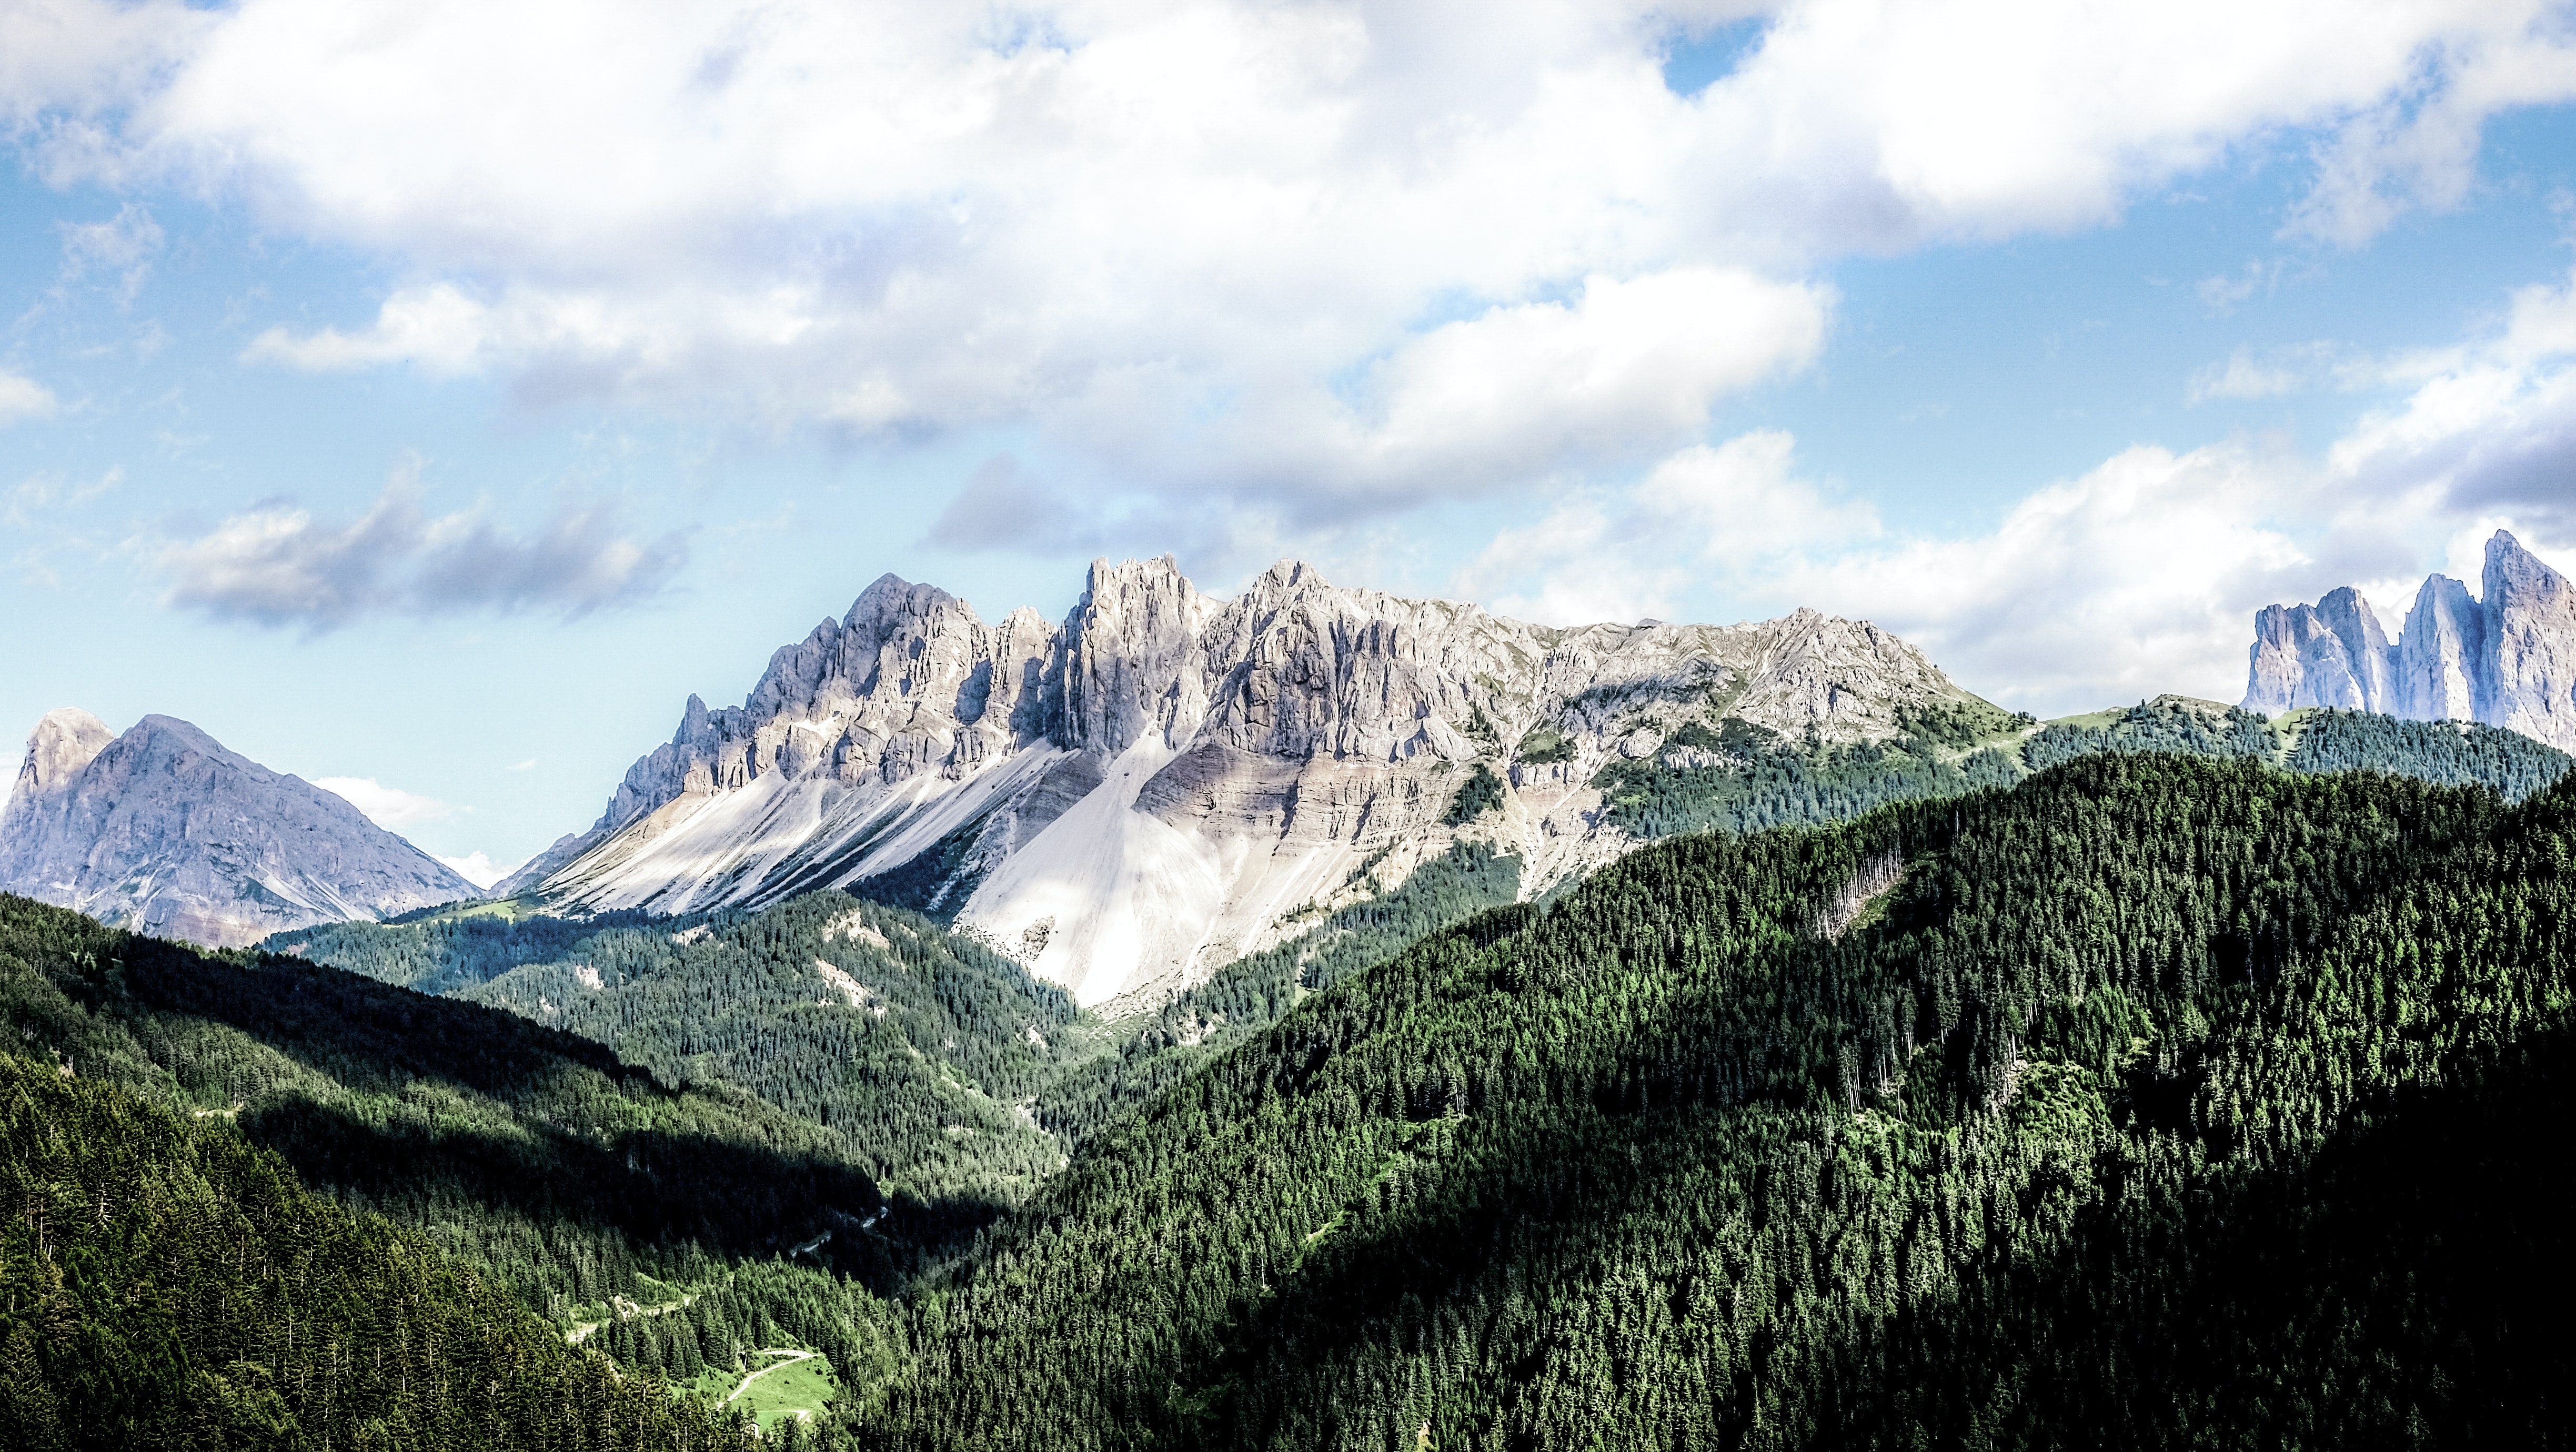 A mountain ridge with jagged peaks towering over a wooded valley in San Martino in Badia